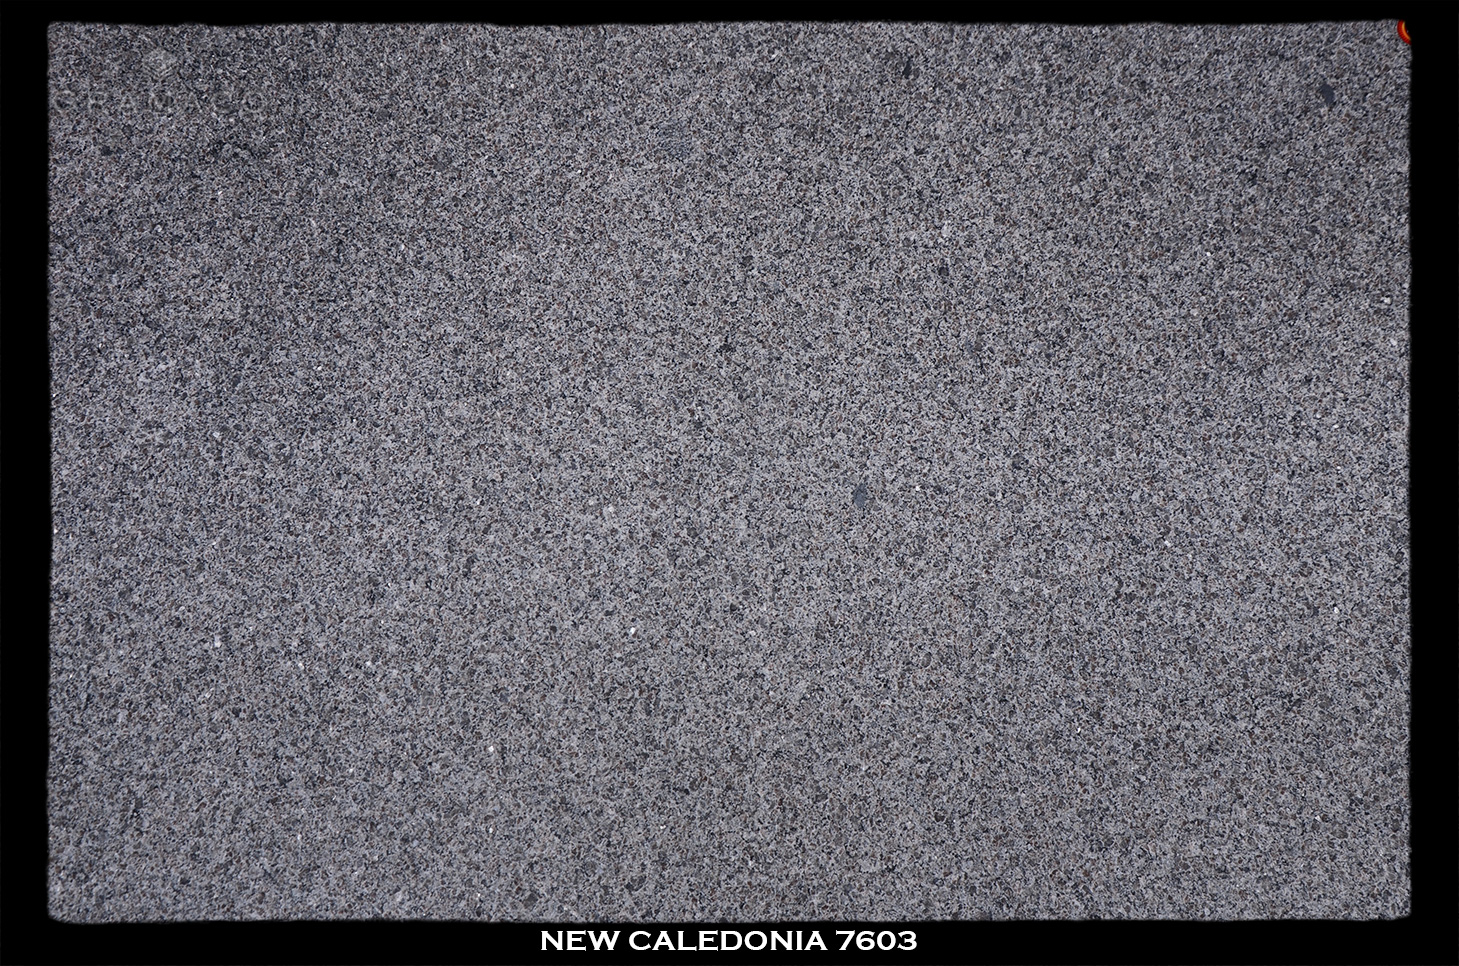 NEW-CALEDONIA-7603---FULL-SLAB-BLACK